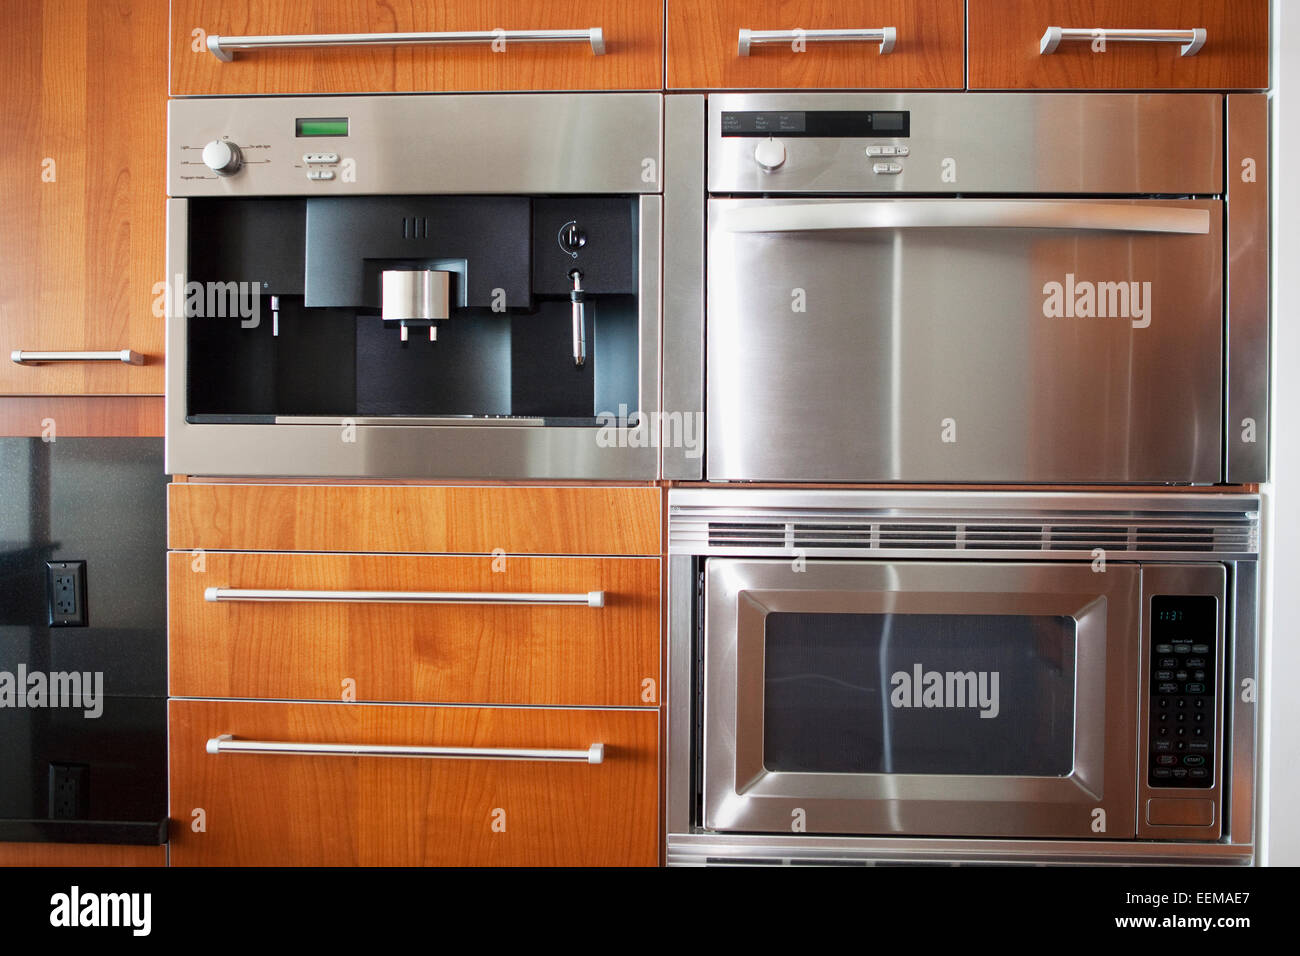 Ovens, microwave and cabinets in modern kitchen Stock Photo - Alamy